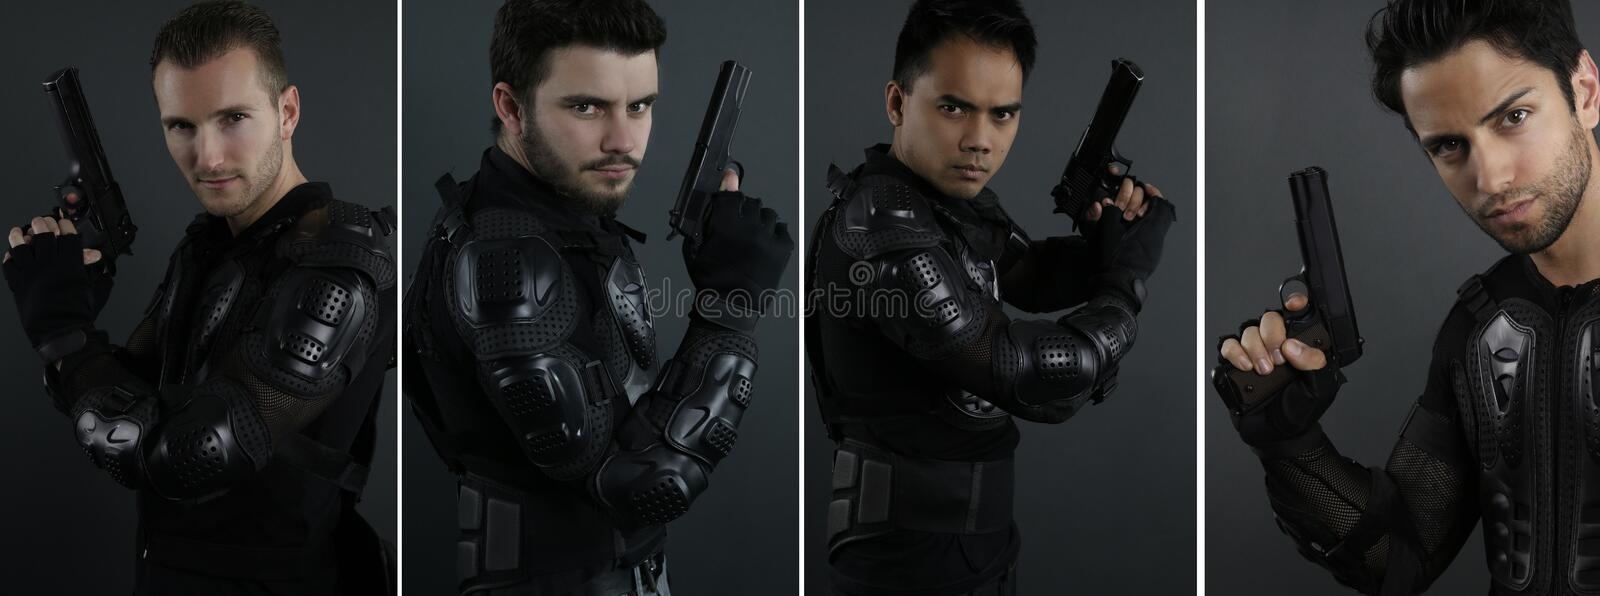 Super cops - portrait of four men of the special forces stock images